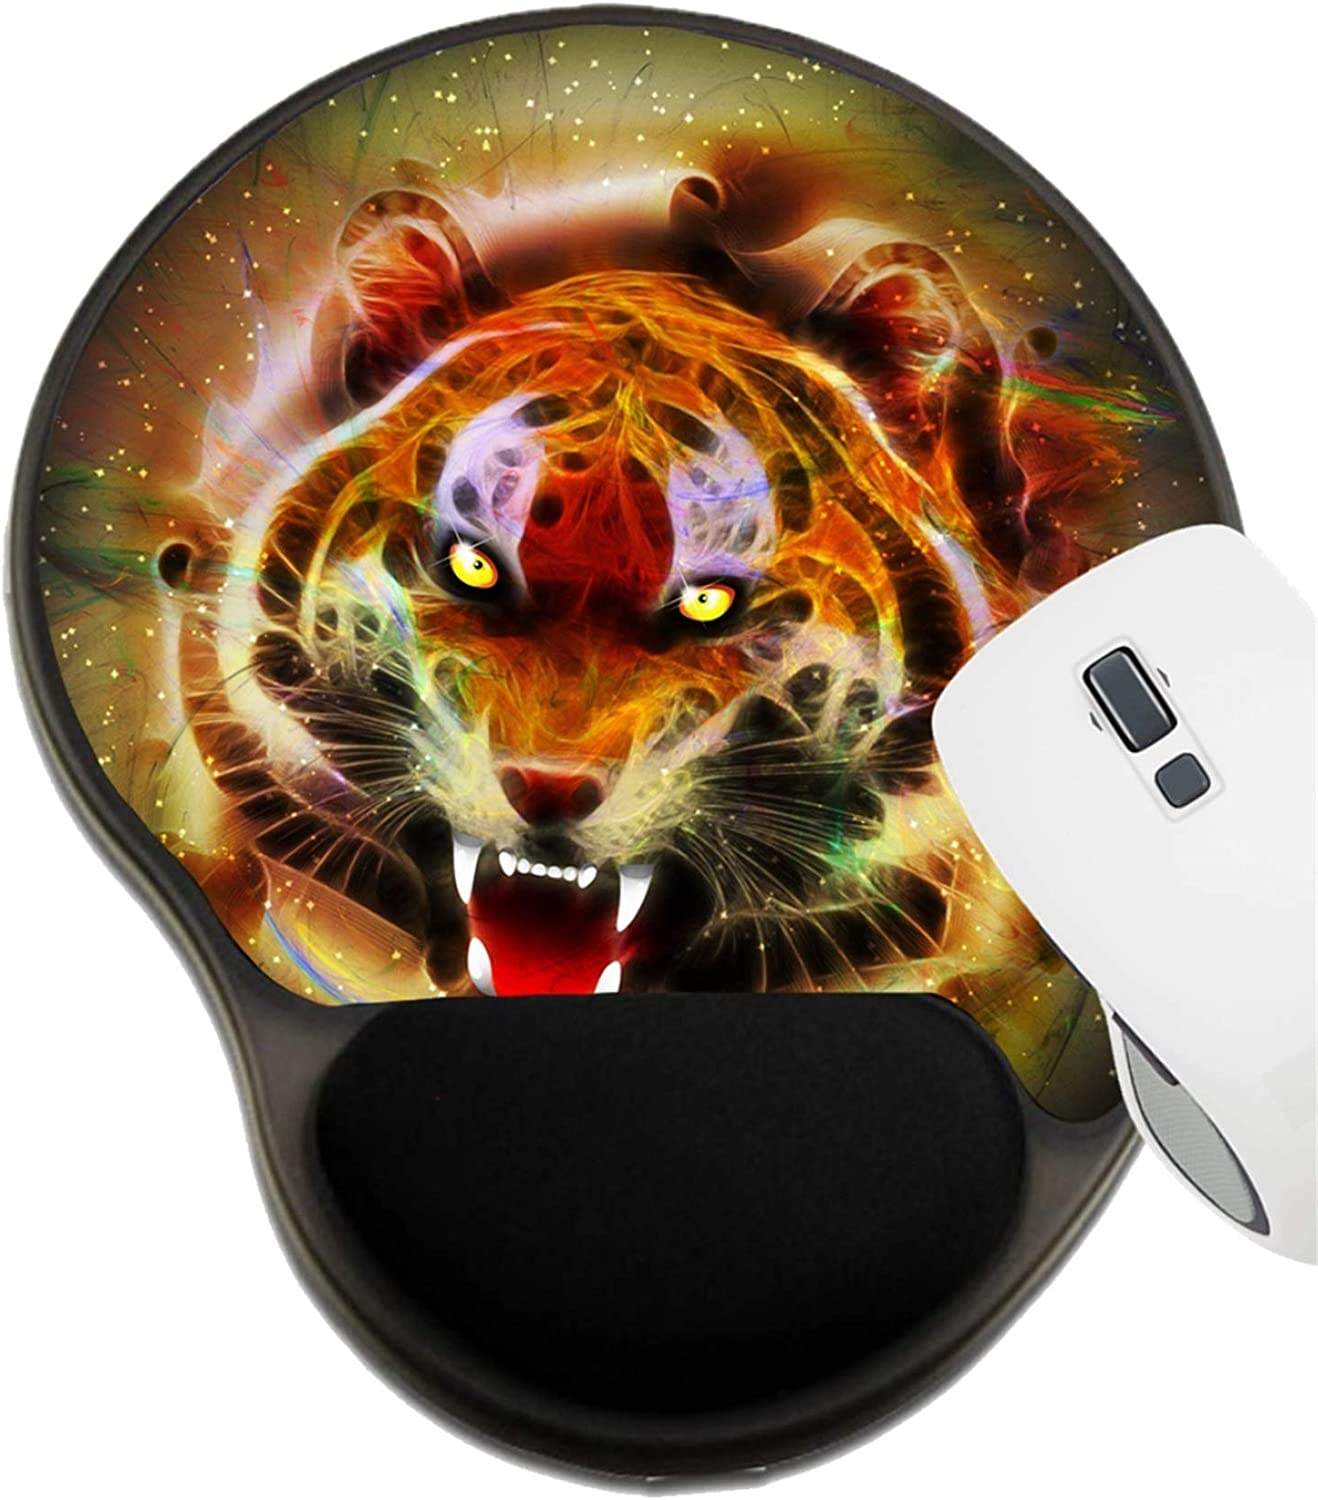 MSD Mousepad Wrist Rest Protected Mouse Pads Lion Against Stormy Sky Image ID 17928137 Mat with Wrist Support